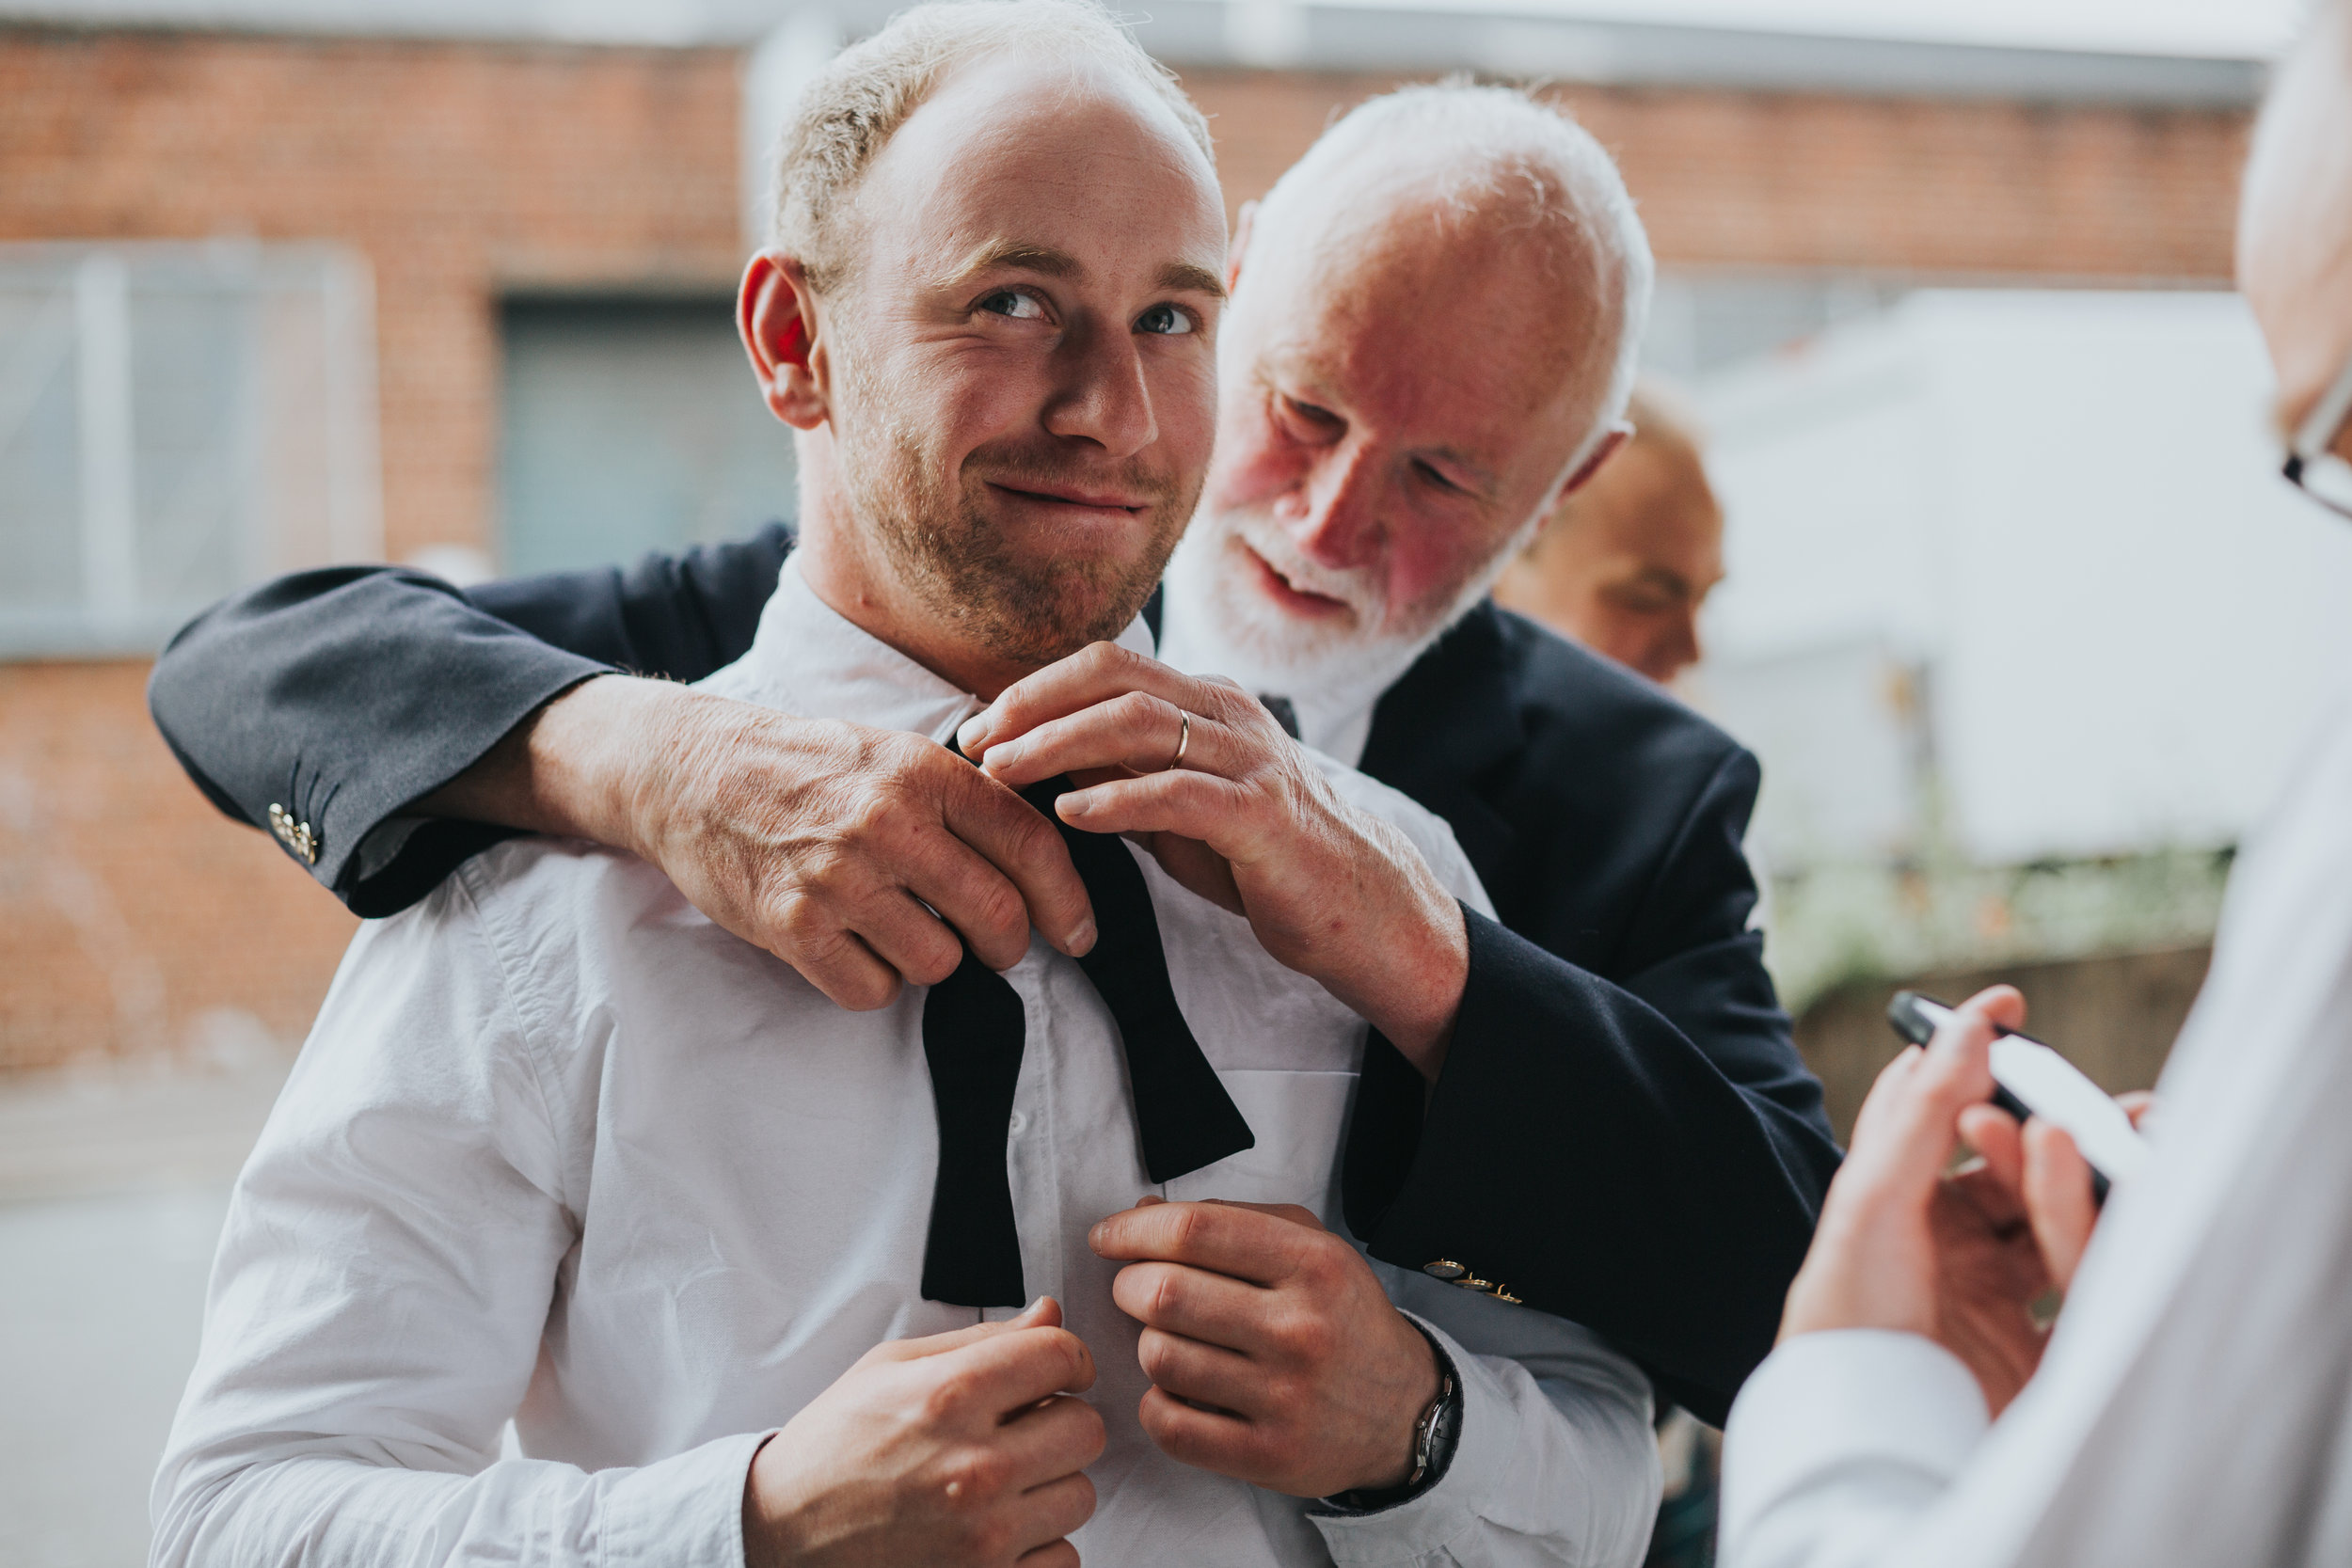 Male wedding guests has his tie fixed by another male wedding guest.